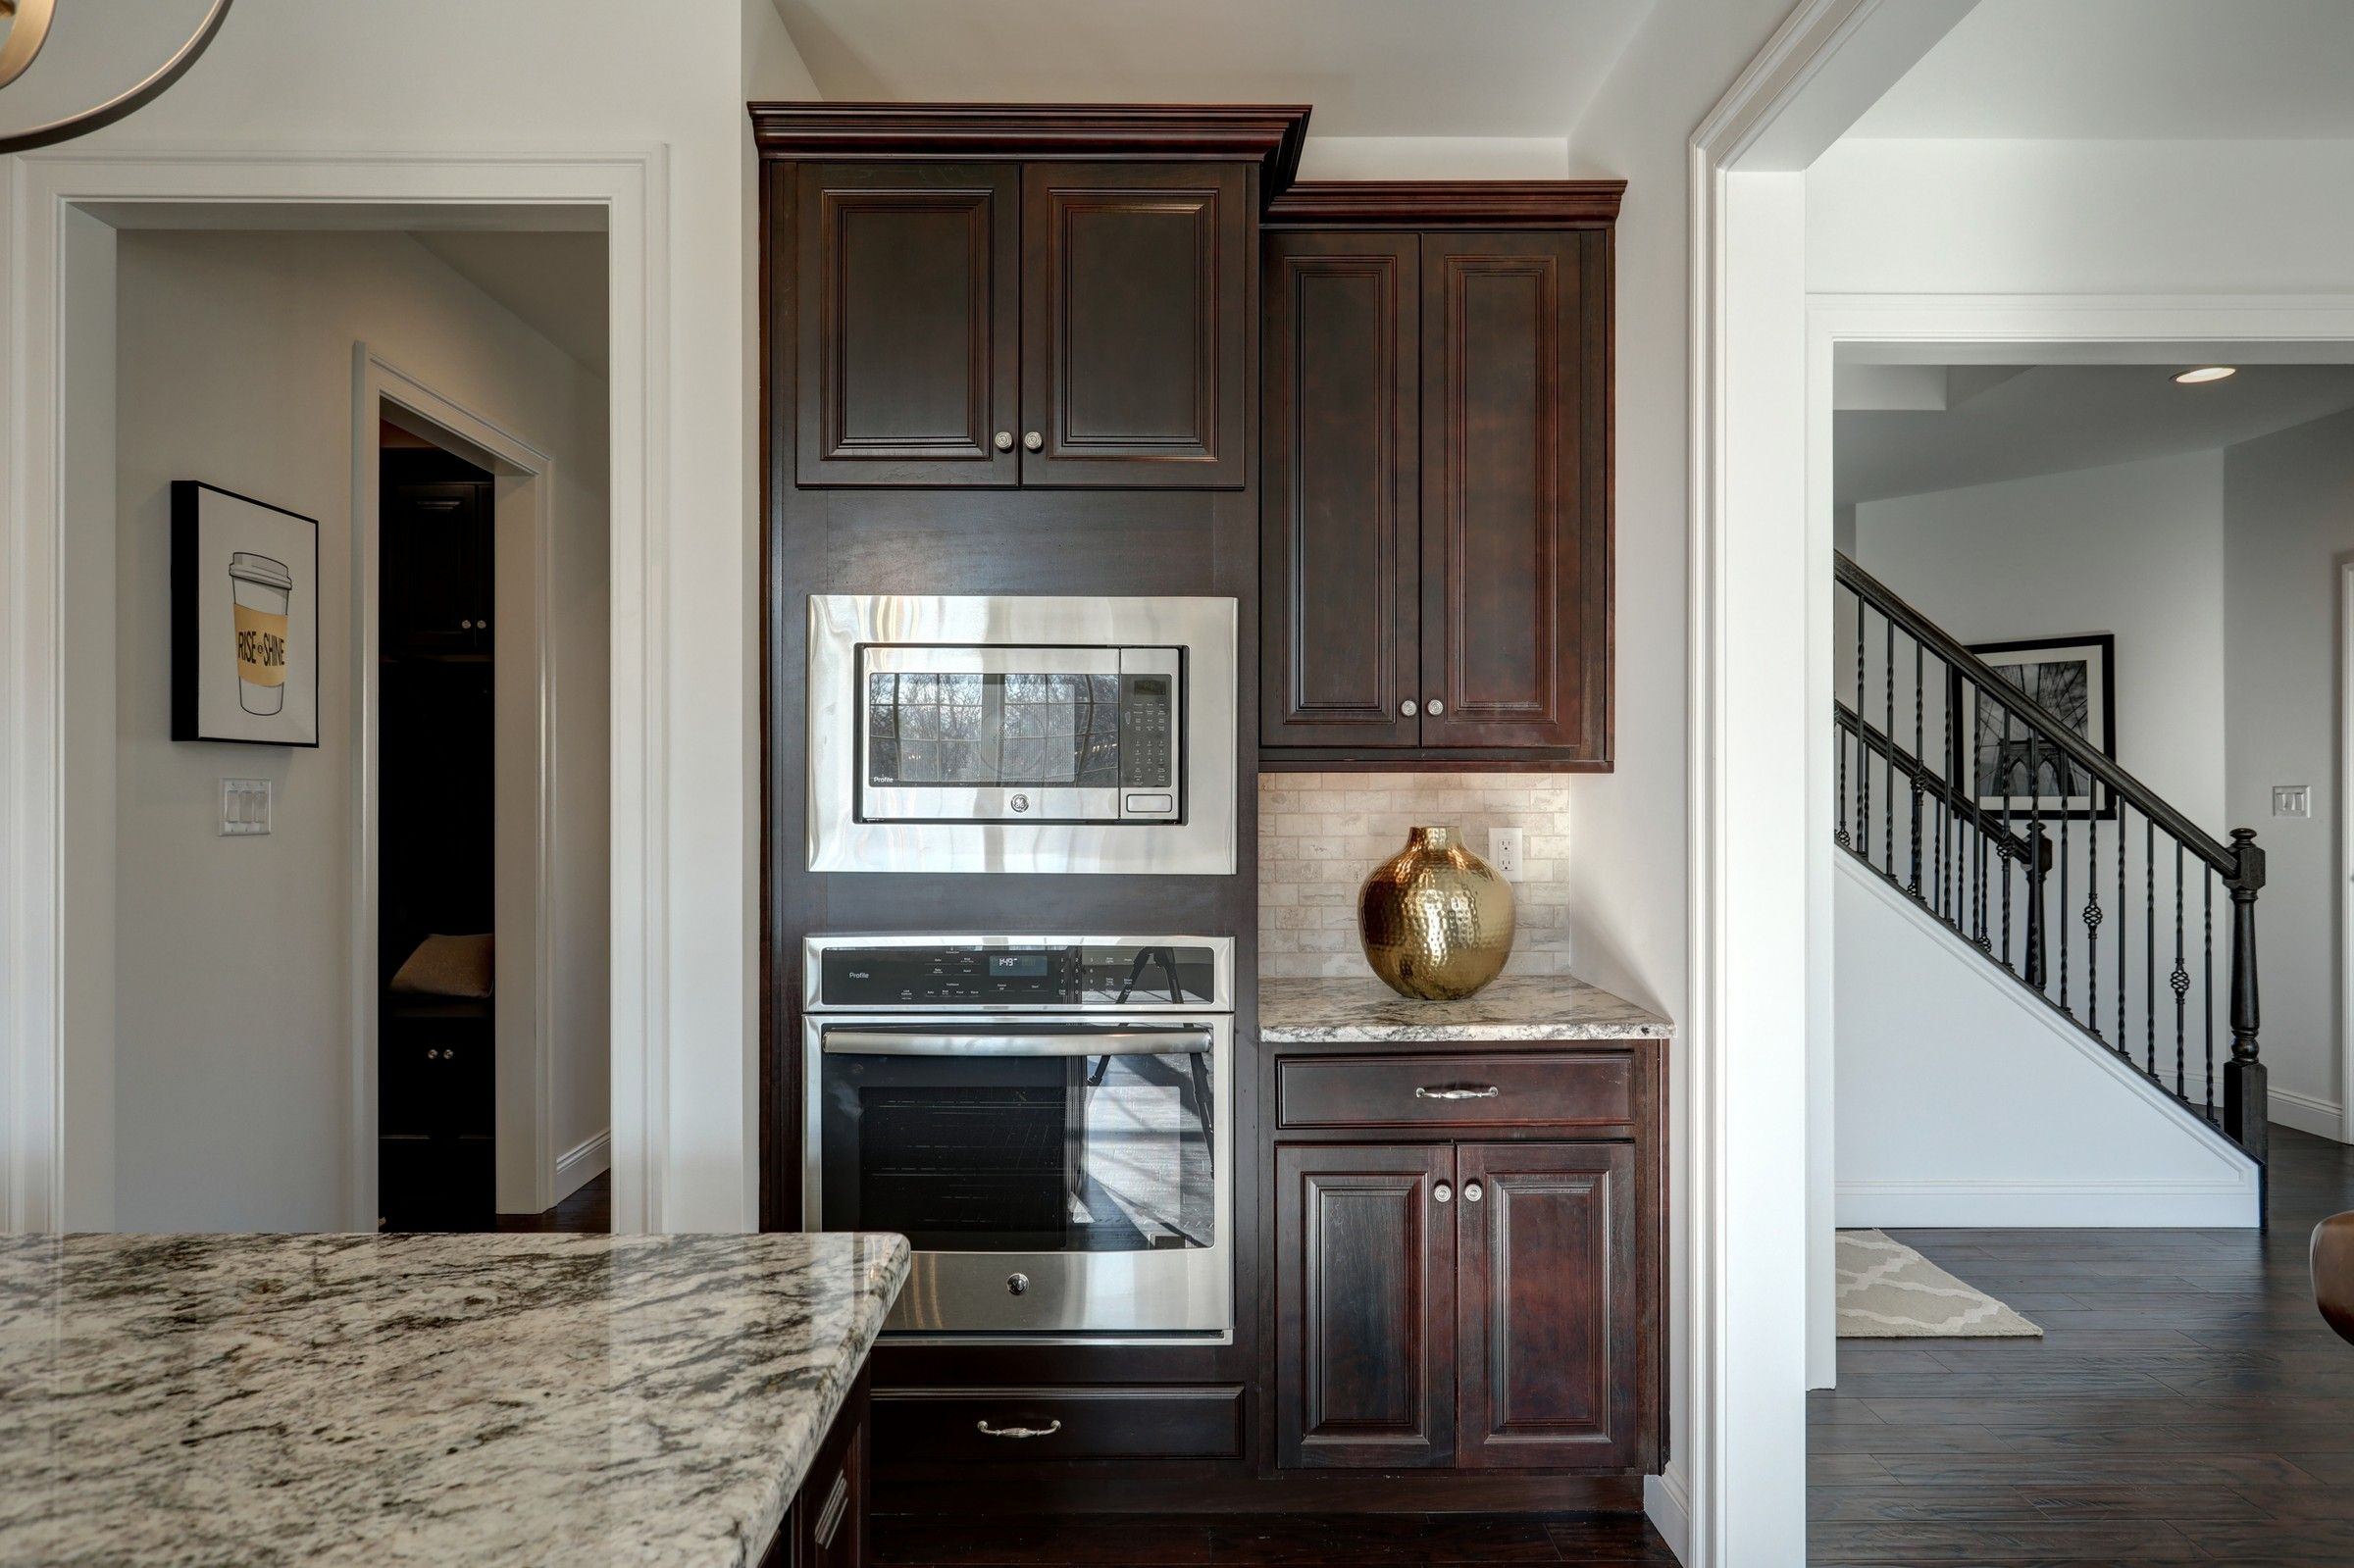 Kitchen featured in the Ethan English Cottage By Keystone Custom Homes in Washington, MD